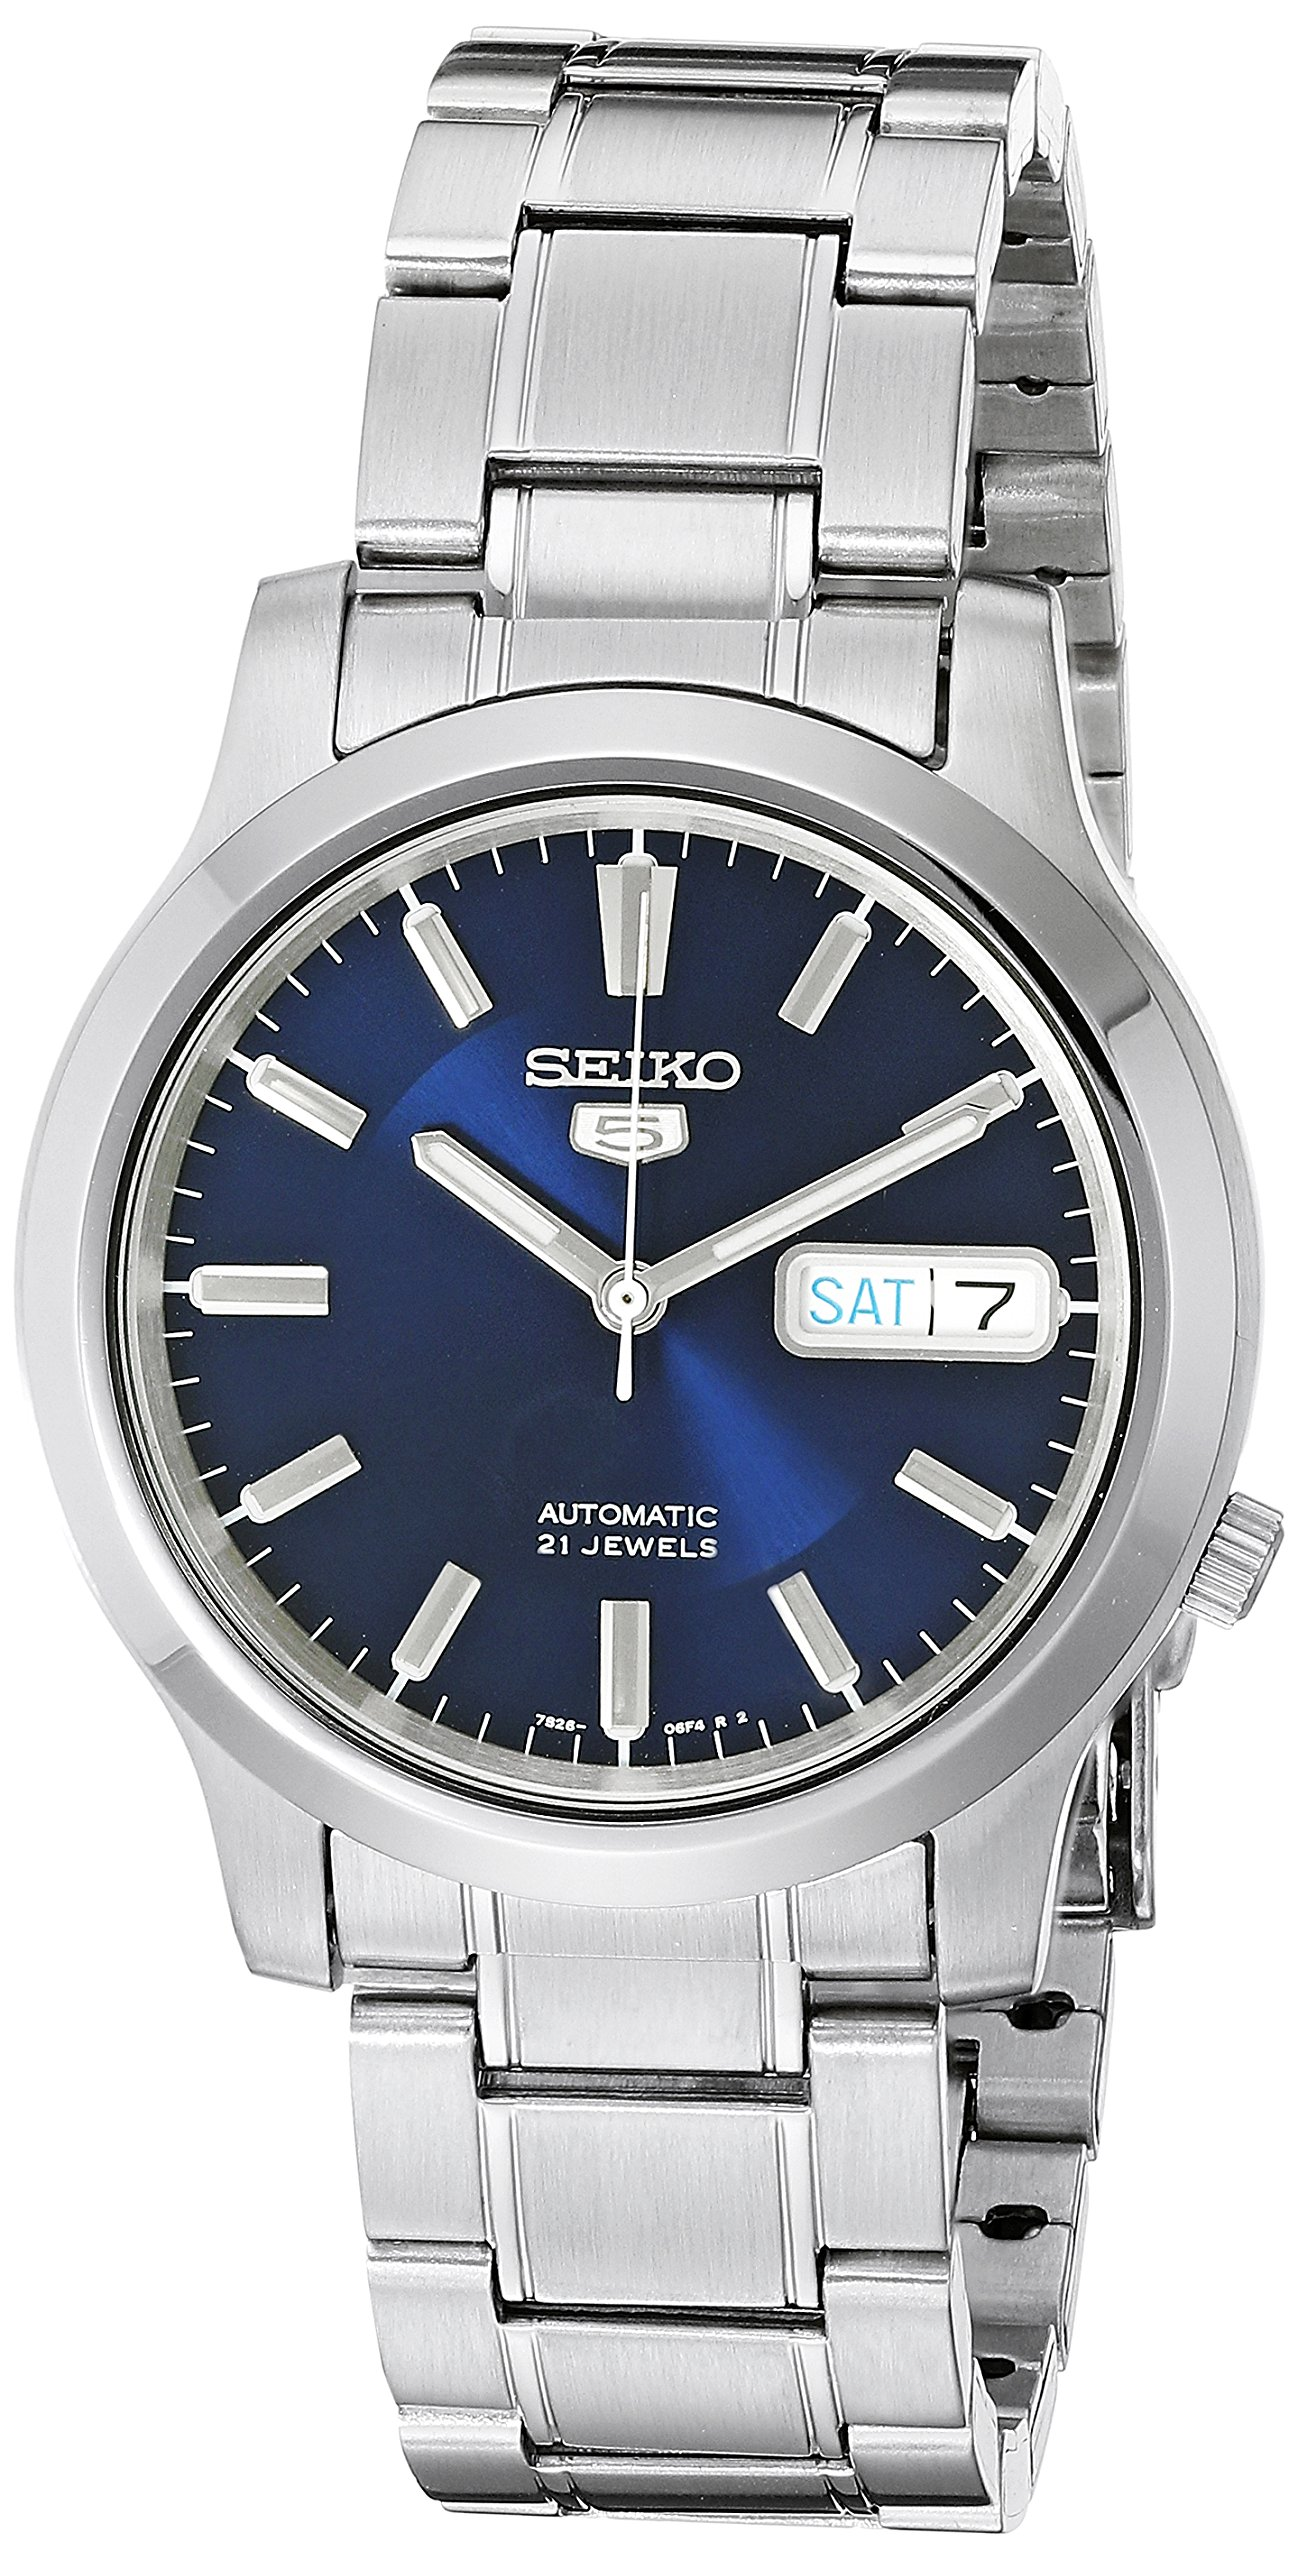 Seiko 5 Men's SNK793 Automatic Stainless Steel Watch with Blue Dial by SEIKO